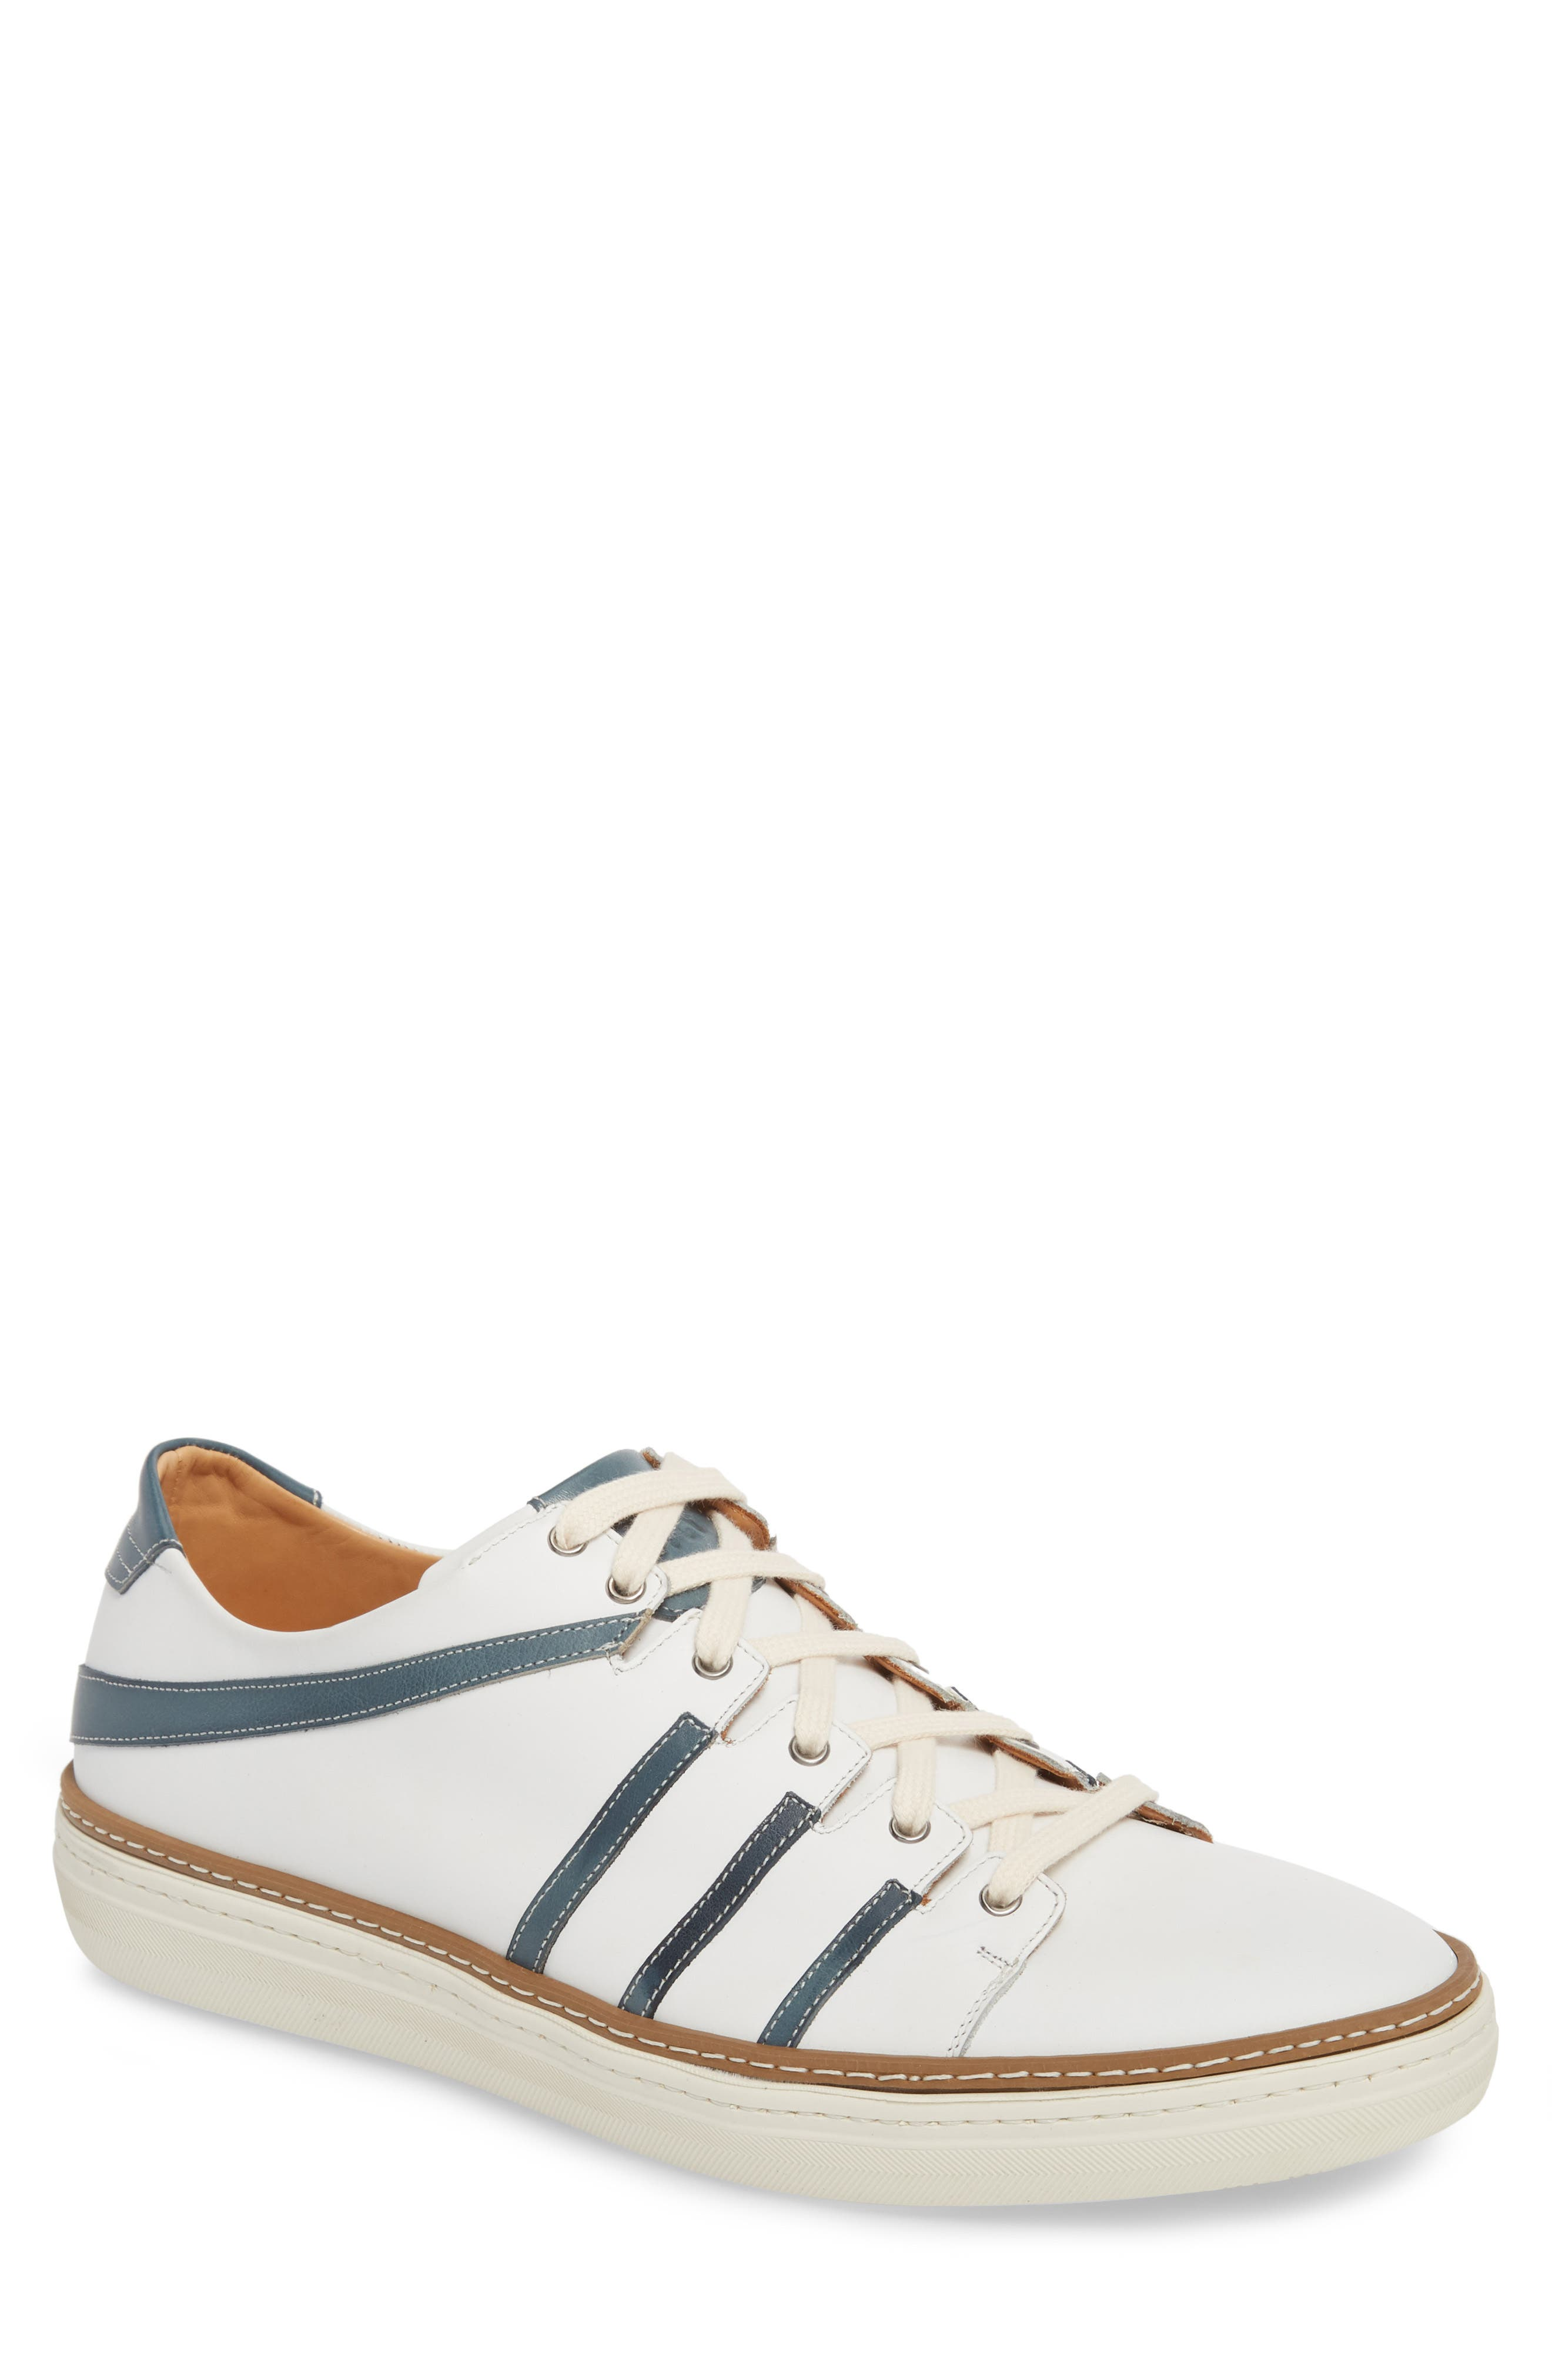 Tebas Striped Low Top Sneaker,                         Main,                         color, White/ Jeans Leather